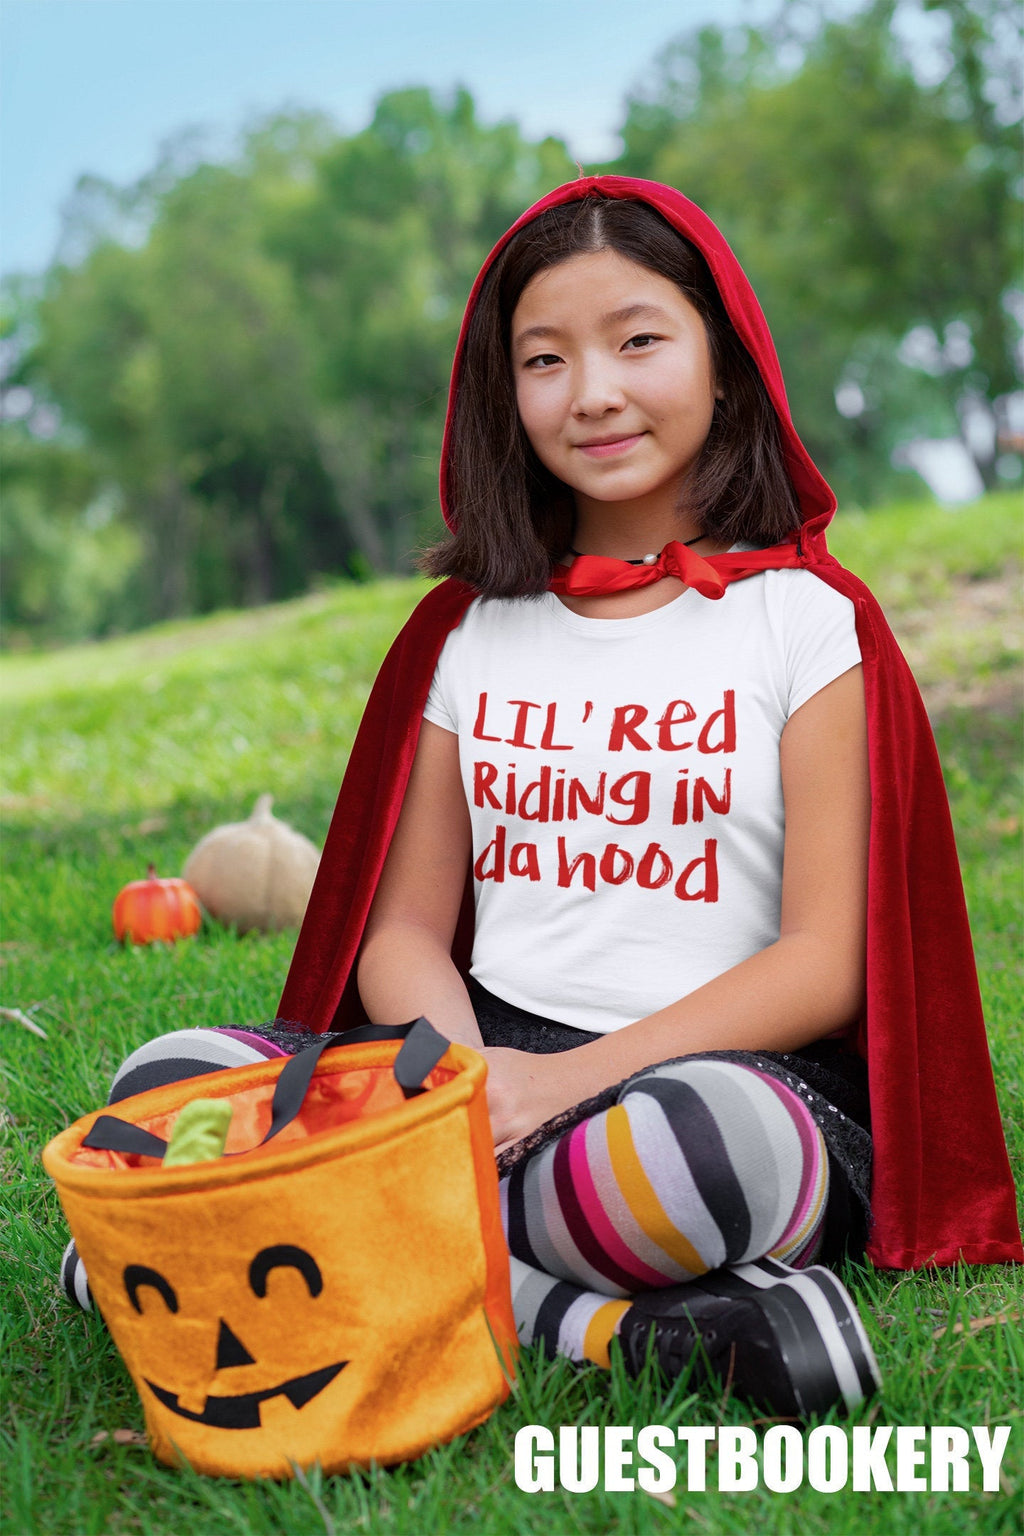 Lil Red Riding in Da Hood Kid's T-shirt - Guestbookery